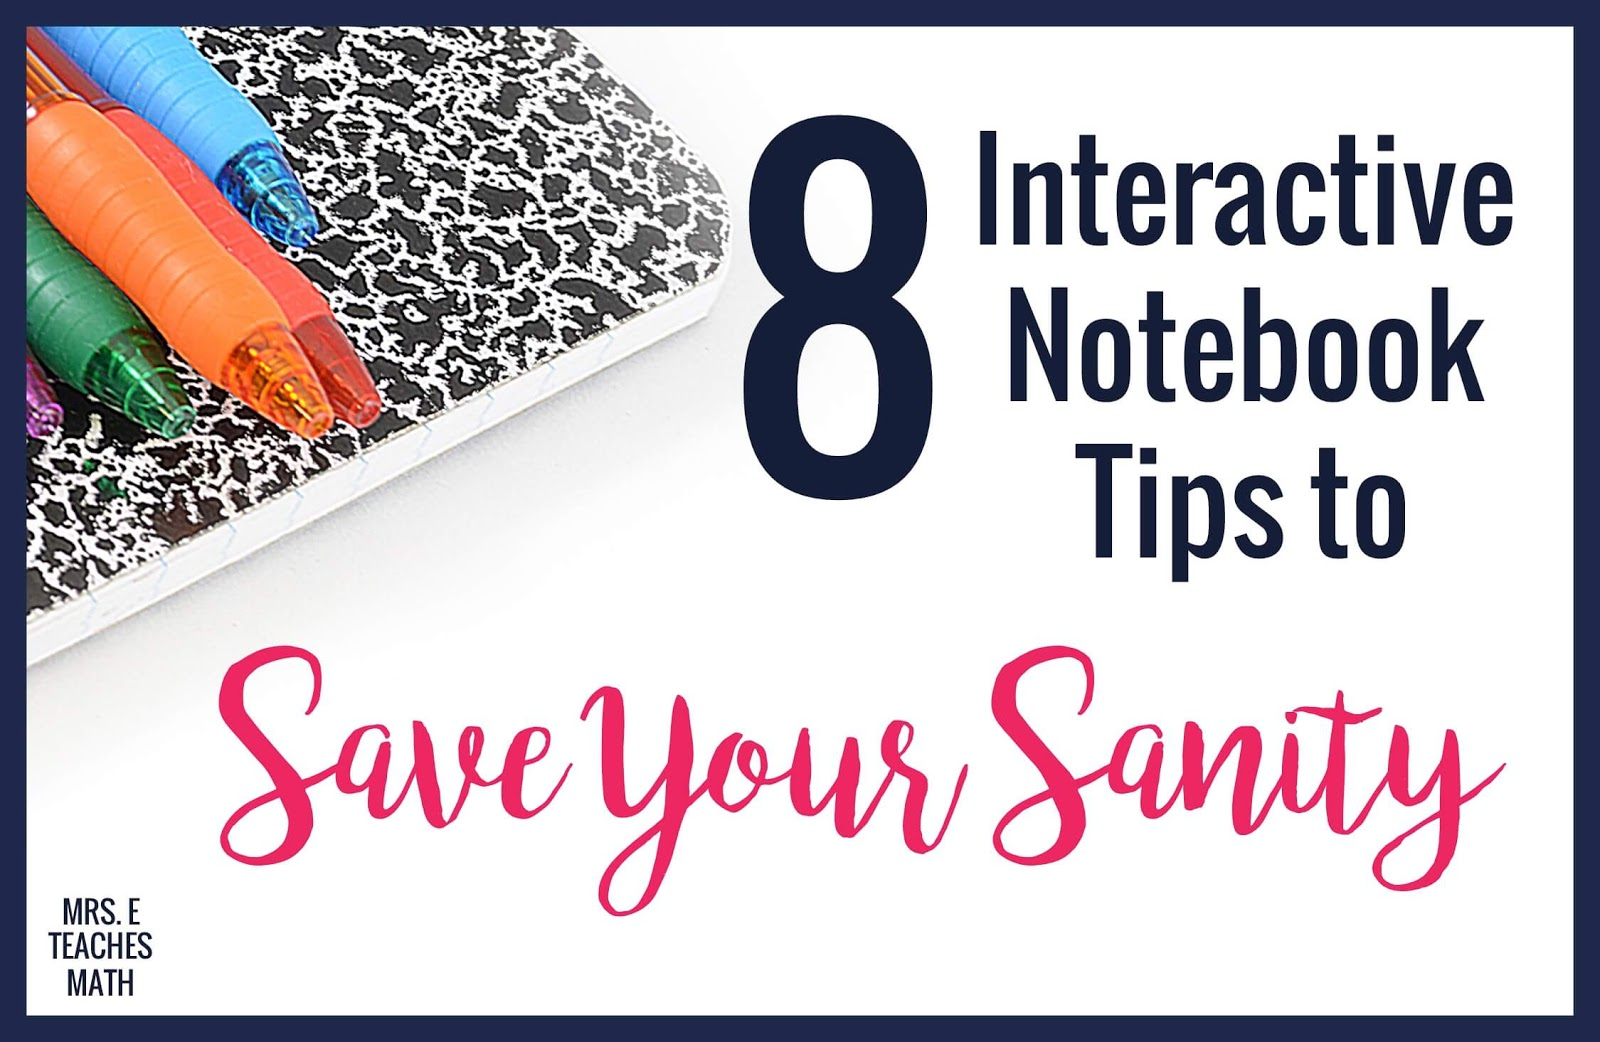 Teachers, these interactive notebook tips will save your sanity and keep you happy!  These tips will help you train your students to take good notes, while keeping your life manageable.